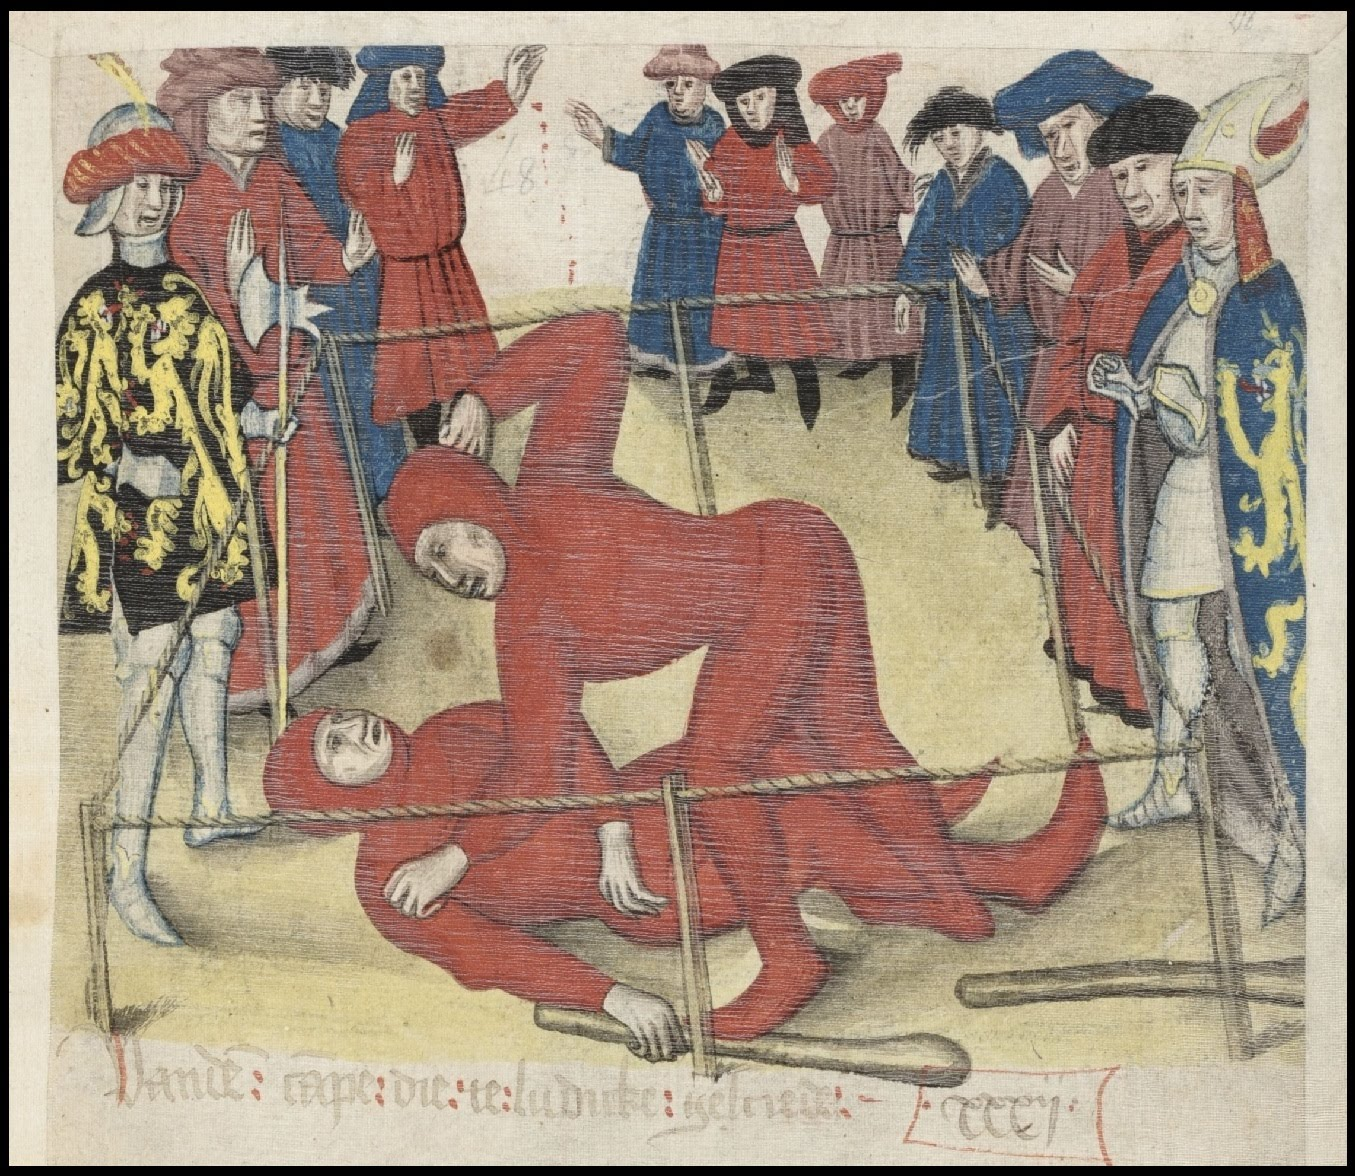 medieval wrestling illustration